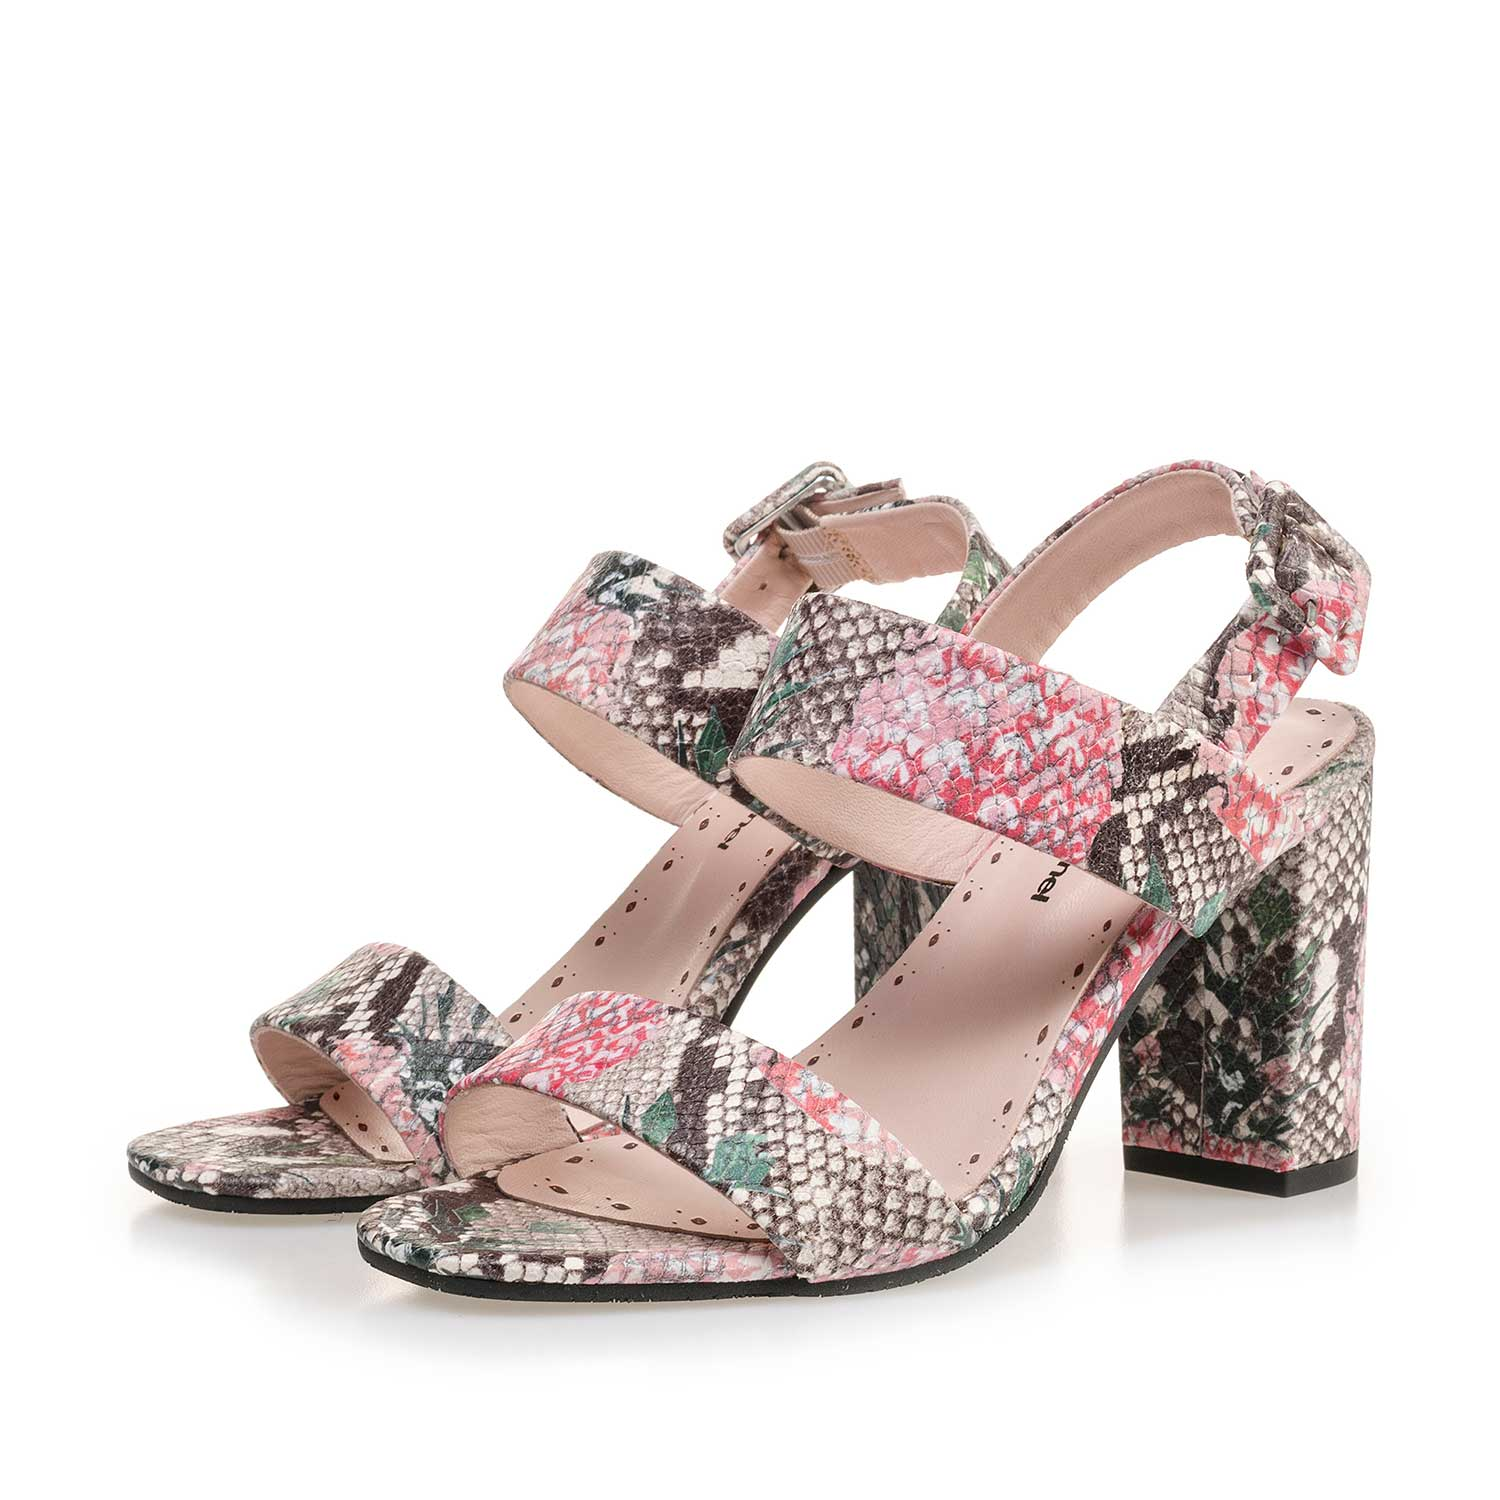 85228/00 - Multi-coloured leather sandal with printed motif